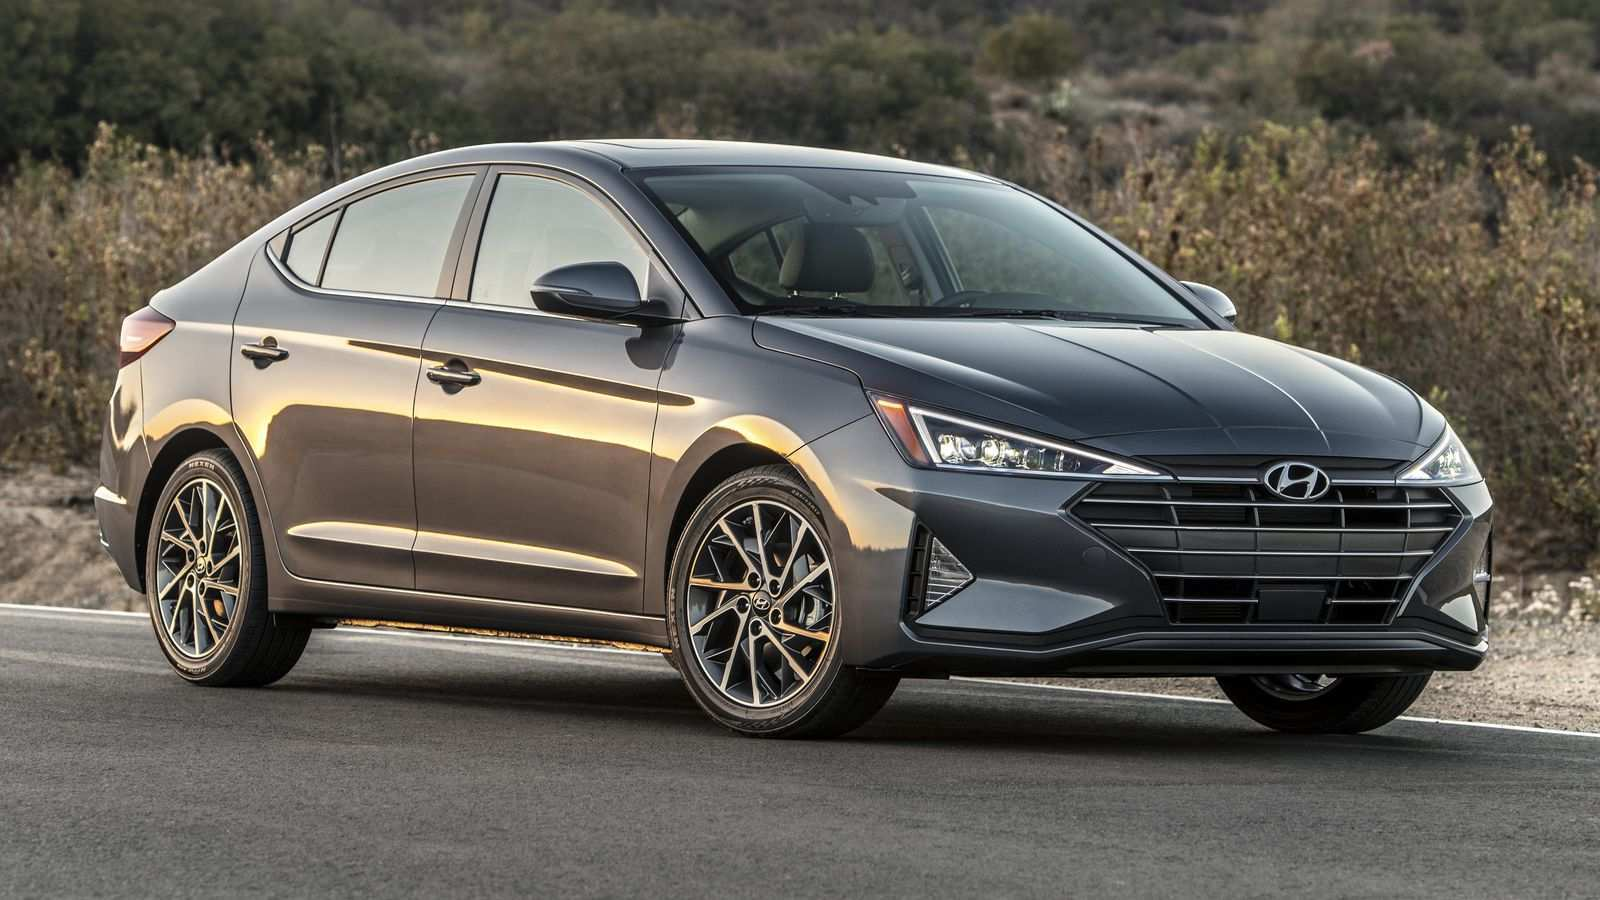 72 The Best 2019 Hyundai Elantra Sport Review And Release Date